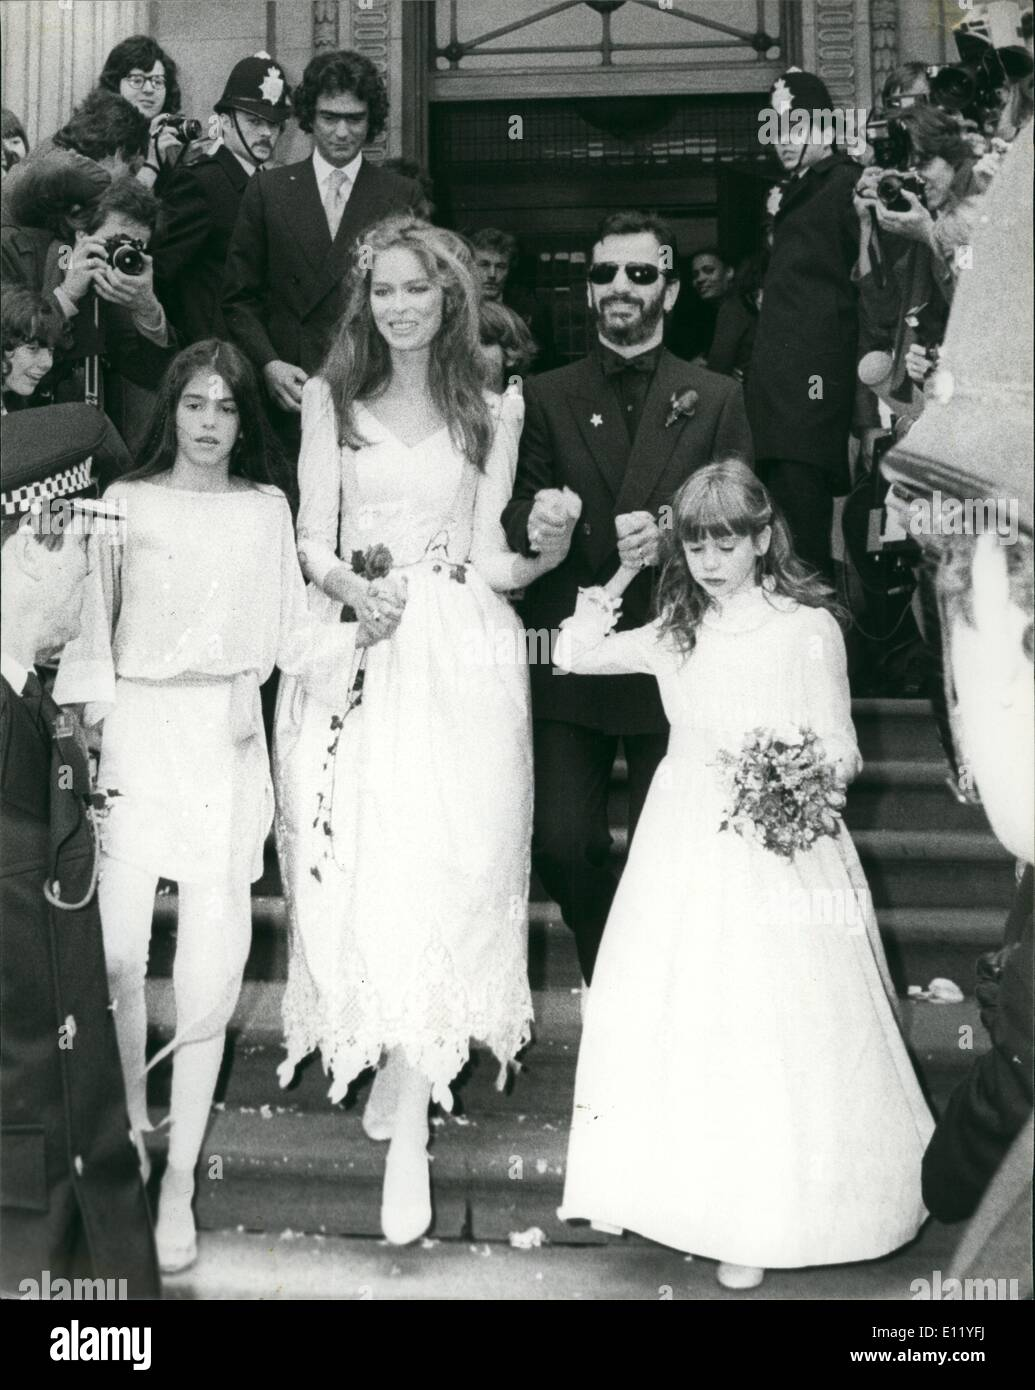 Apr. 04, 1981 - Beatle together for Ringo's wedding: Former Beatles Paul McCartney and George Harrison were among the celebrities who attended the wedding of their former fellow band member Ringo starr in London today. 41 year old Ringo married the girl he has been dating for the past year, 36 year old American actress Barbara Bach. The couple, who are staying at the Dorchester hotel, were wed in a short ceremony at Mrylebone register office in London. It was seconds time around in the marriage stakes for both the famous Liverpudlian and the shapely Miss Bach - Stock Image